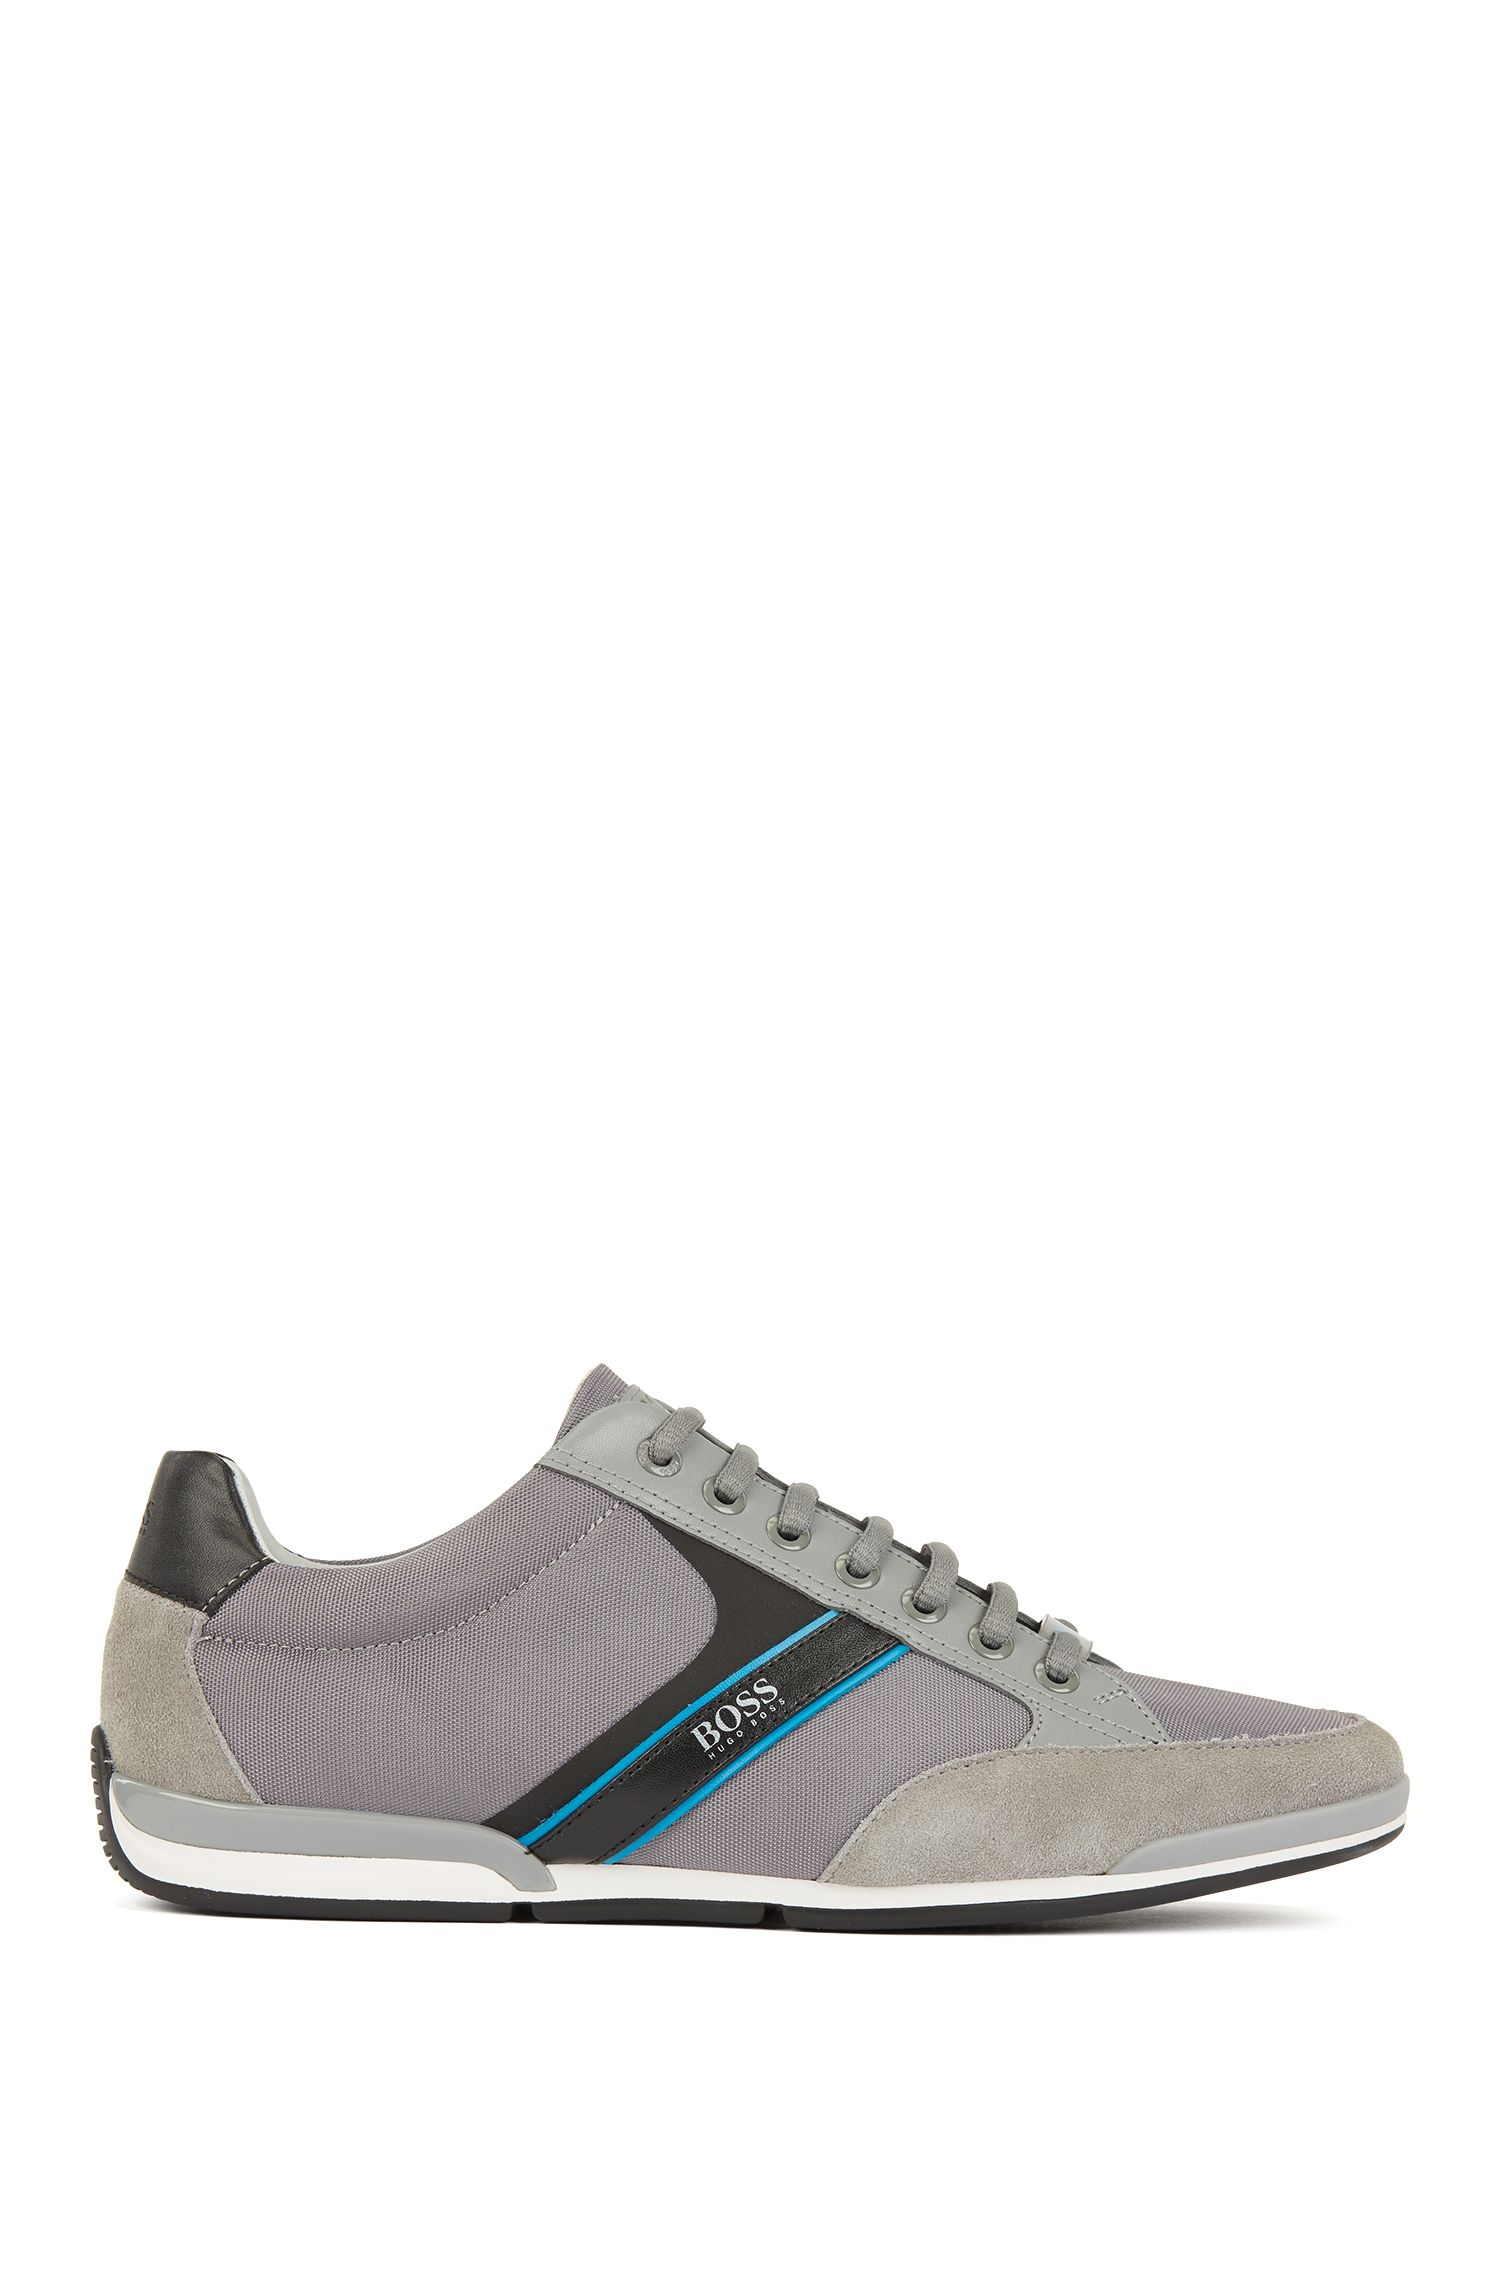 Hugo Boss - Lace-up hybrid trainers with moisture-wicking lining - 1